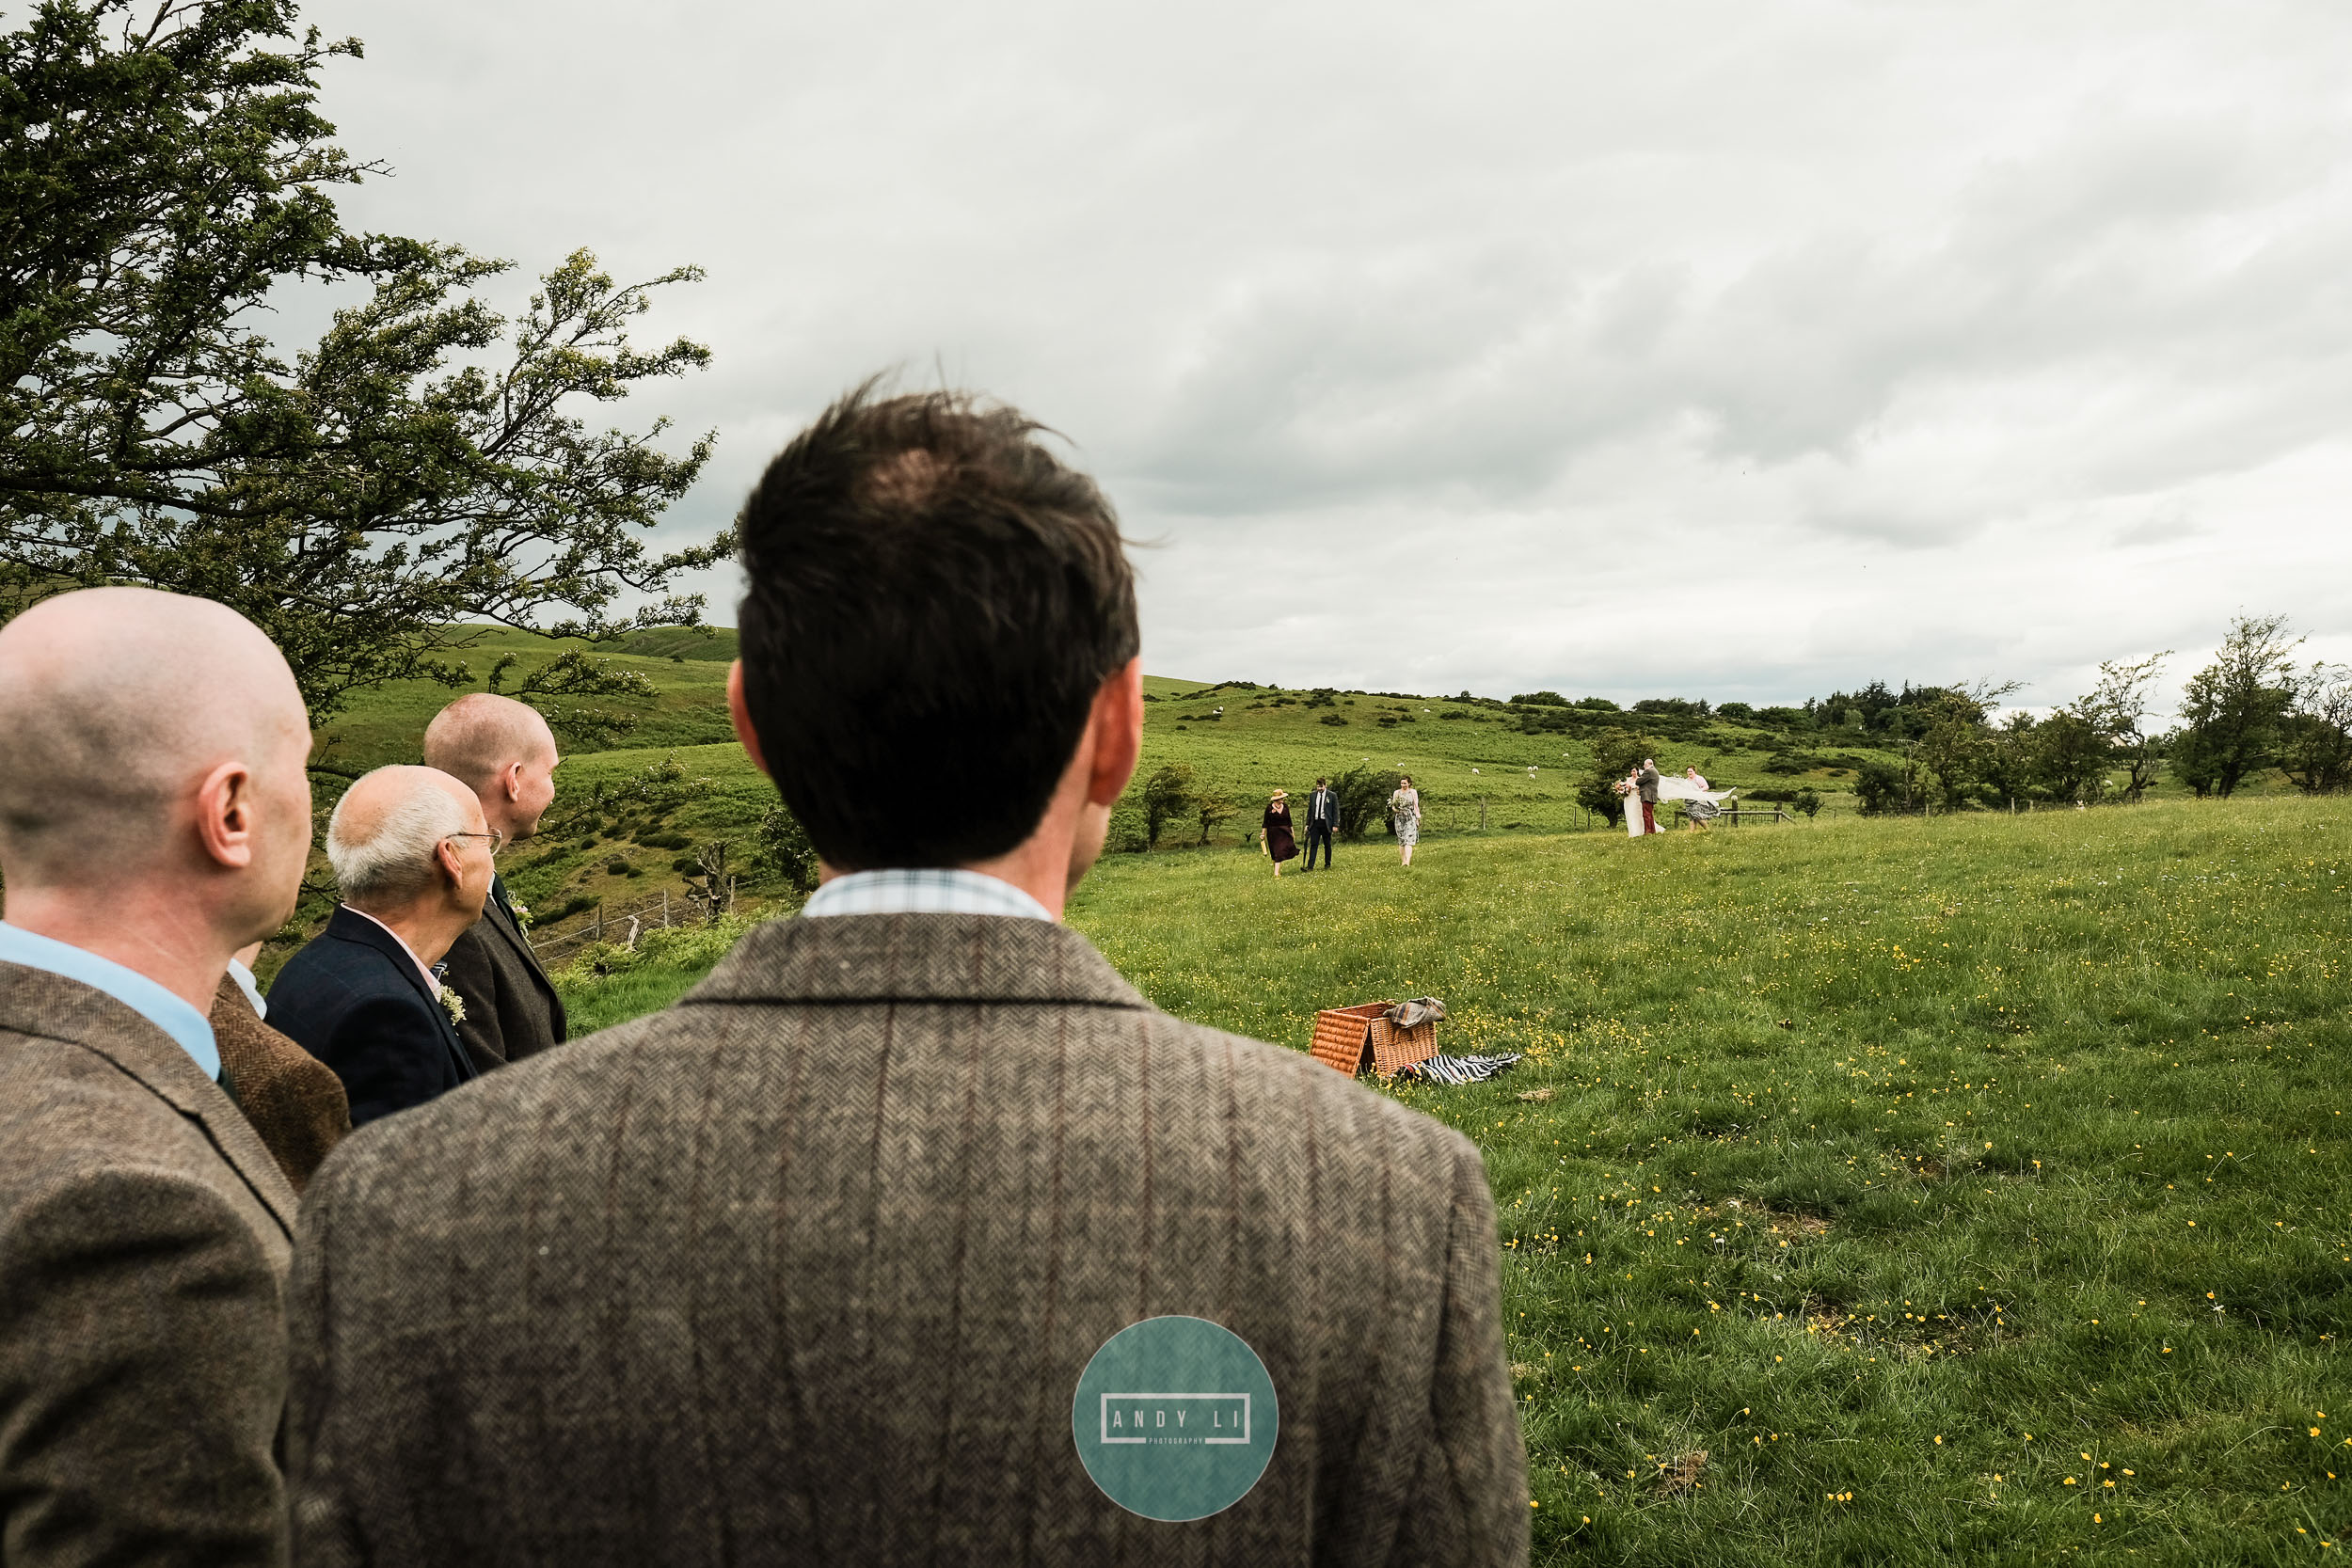 Shropshire Hills Humanist Outdoors Wedding Photography-005-XPRO4758.jpg